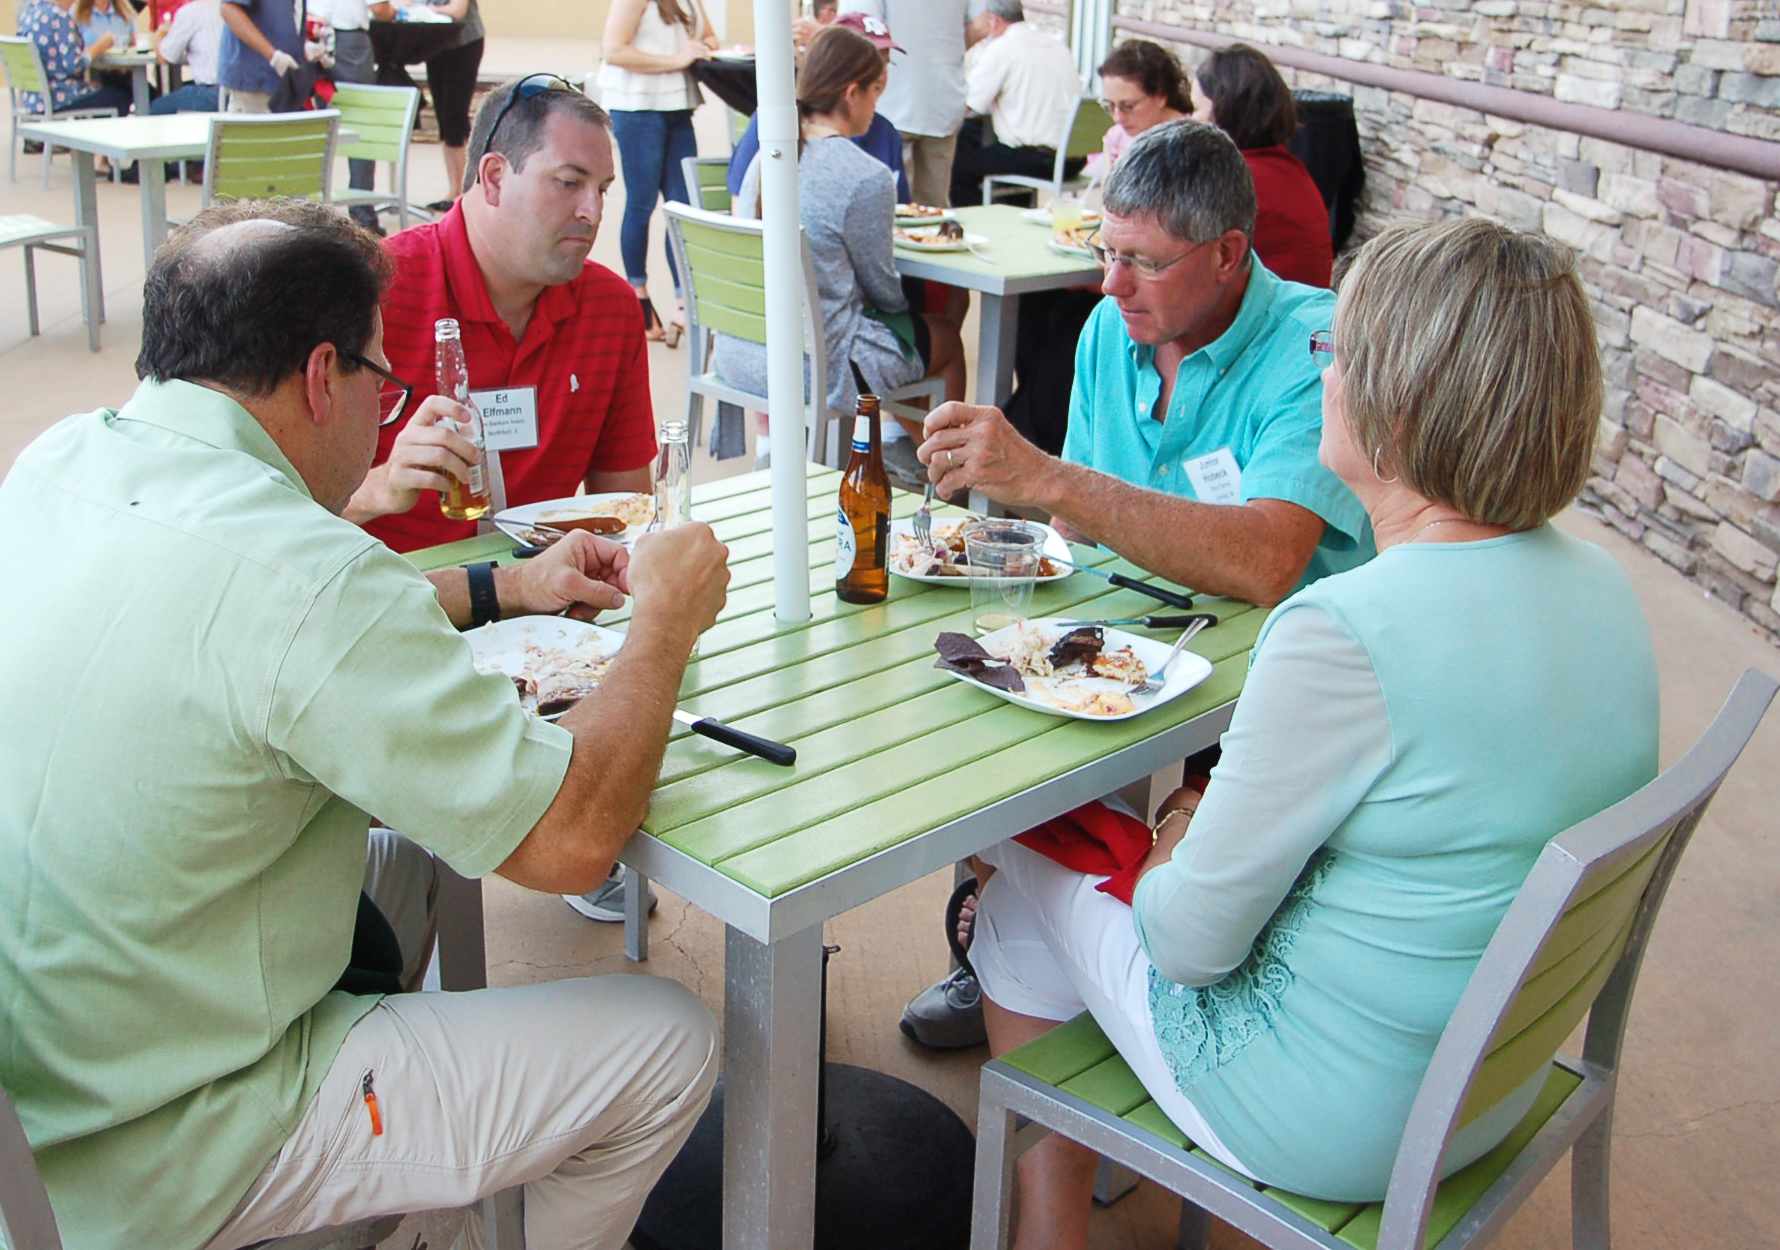 Joe Kessie, Lake City Bank, Warsaw, IN, at left, is joined at dinner by Ed Elfmann, American Bank- ers Association, Washington, D.C. and Michael and Cheryl Dubs, Johnson and Associates, Sterling, CO.